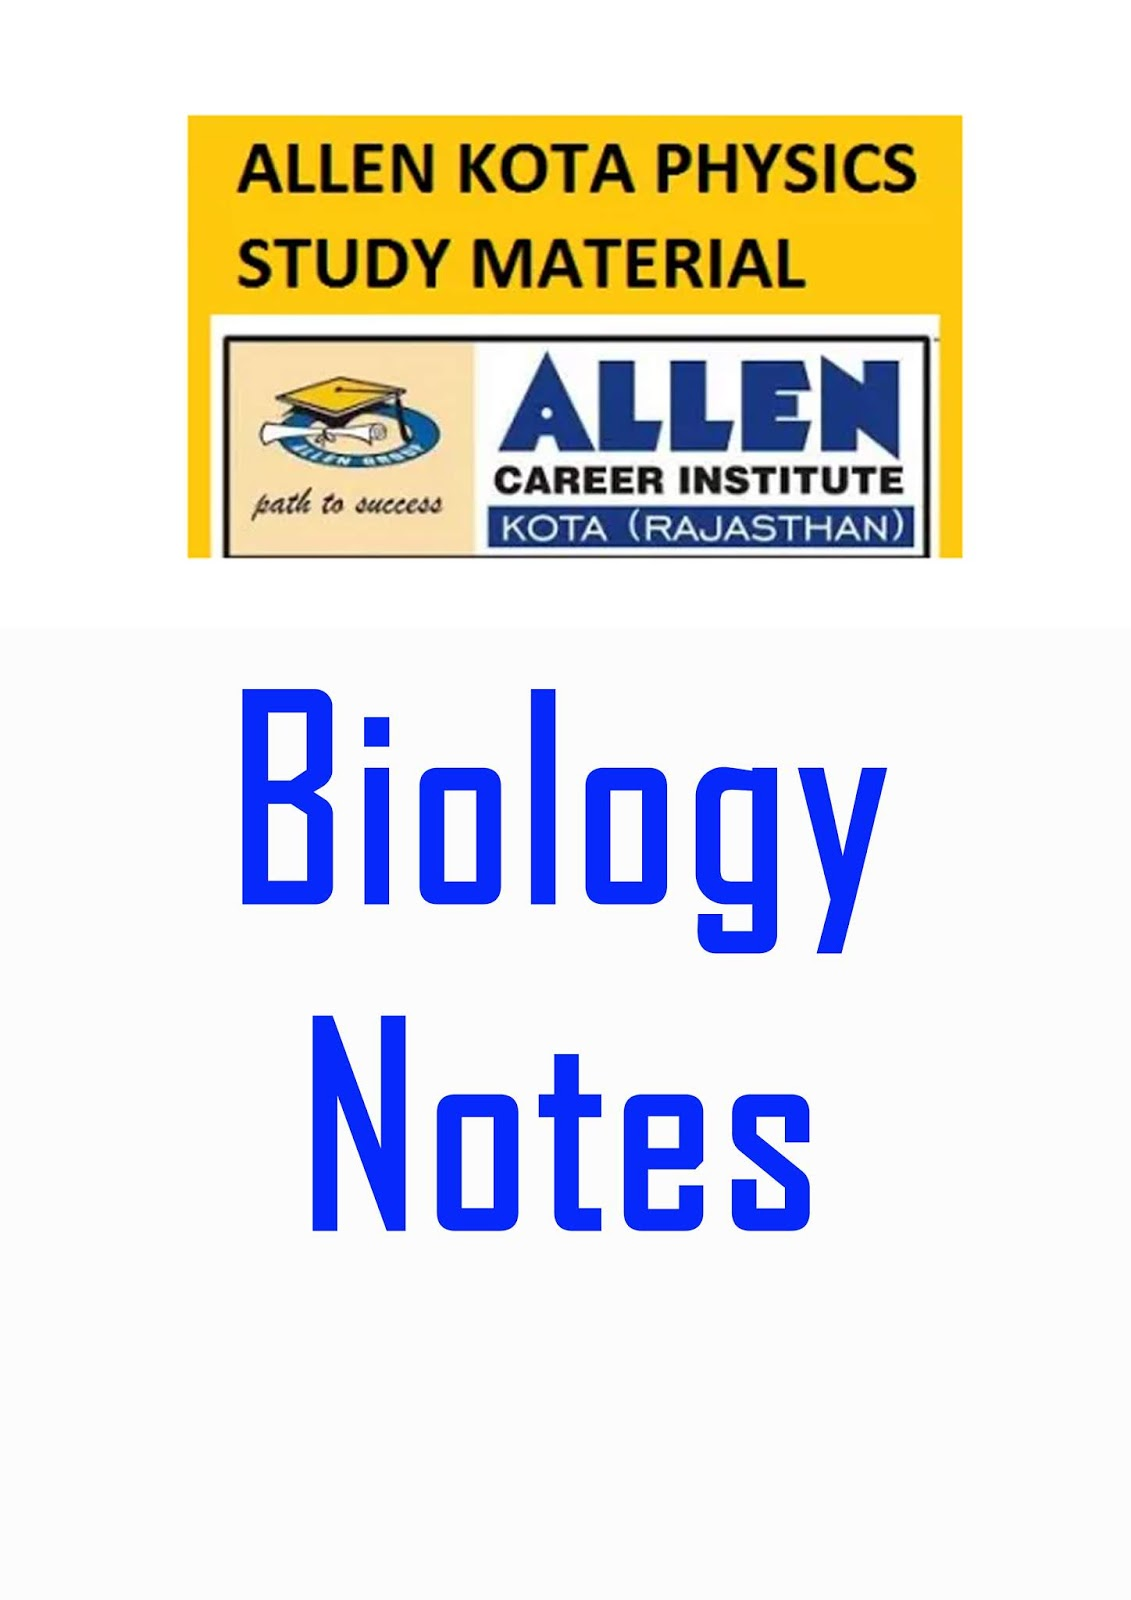 Download ALLEN BIOLOGY Notes Material FOR 2019 NEET & AIIMS